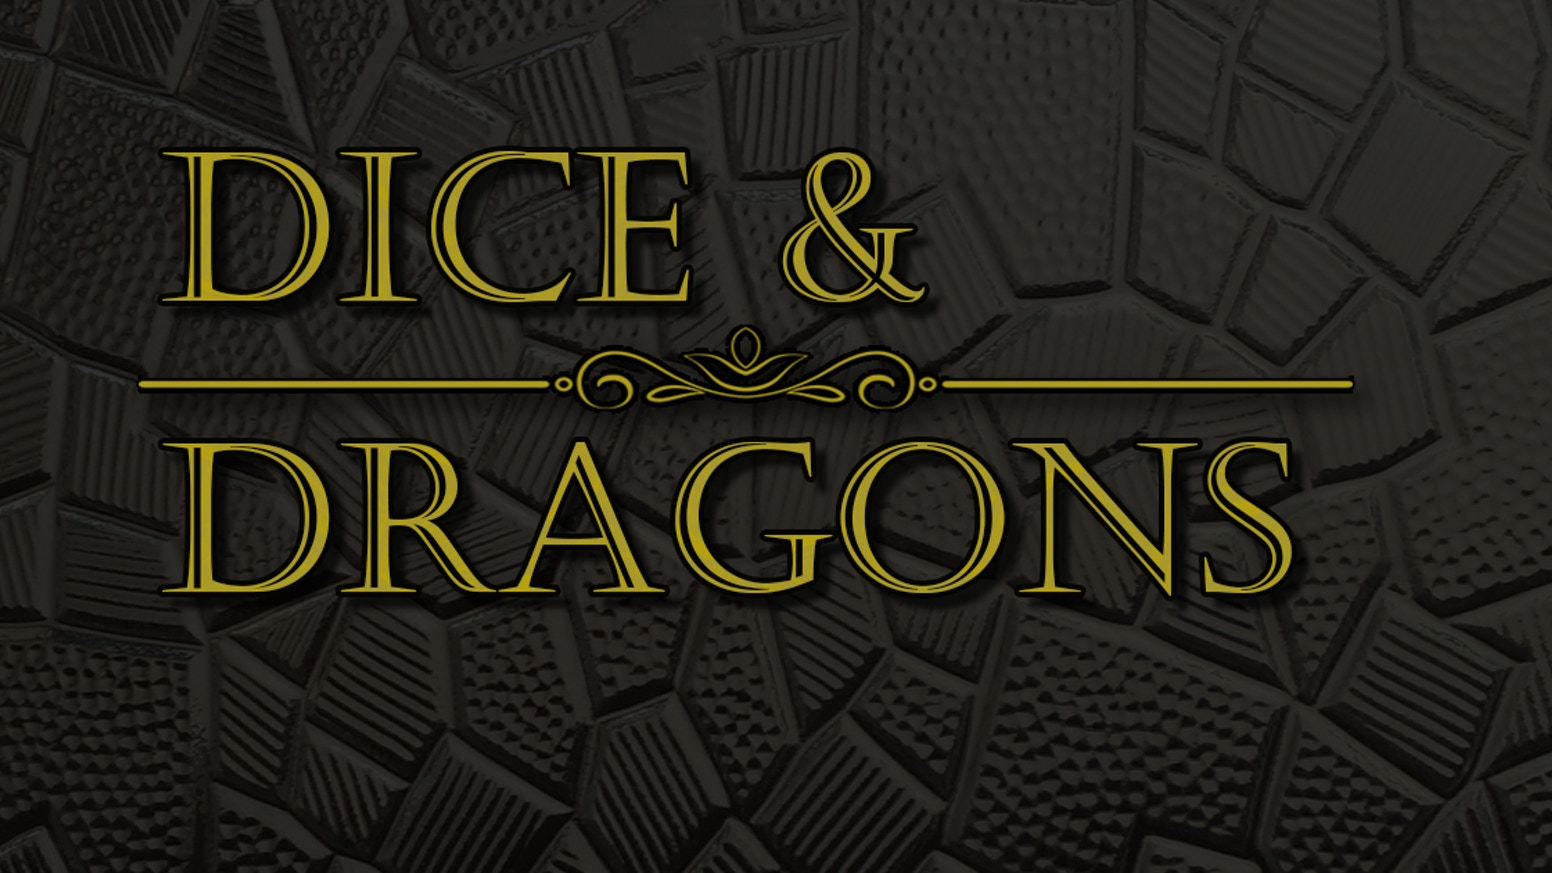 A Co-Op Roleplaying dice game for 1-5 Heroes who dare to face the most terrifying Dragons in Aqedia.